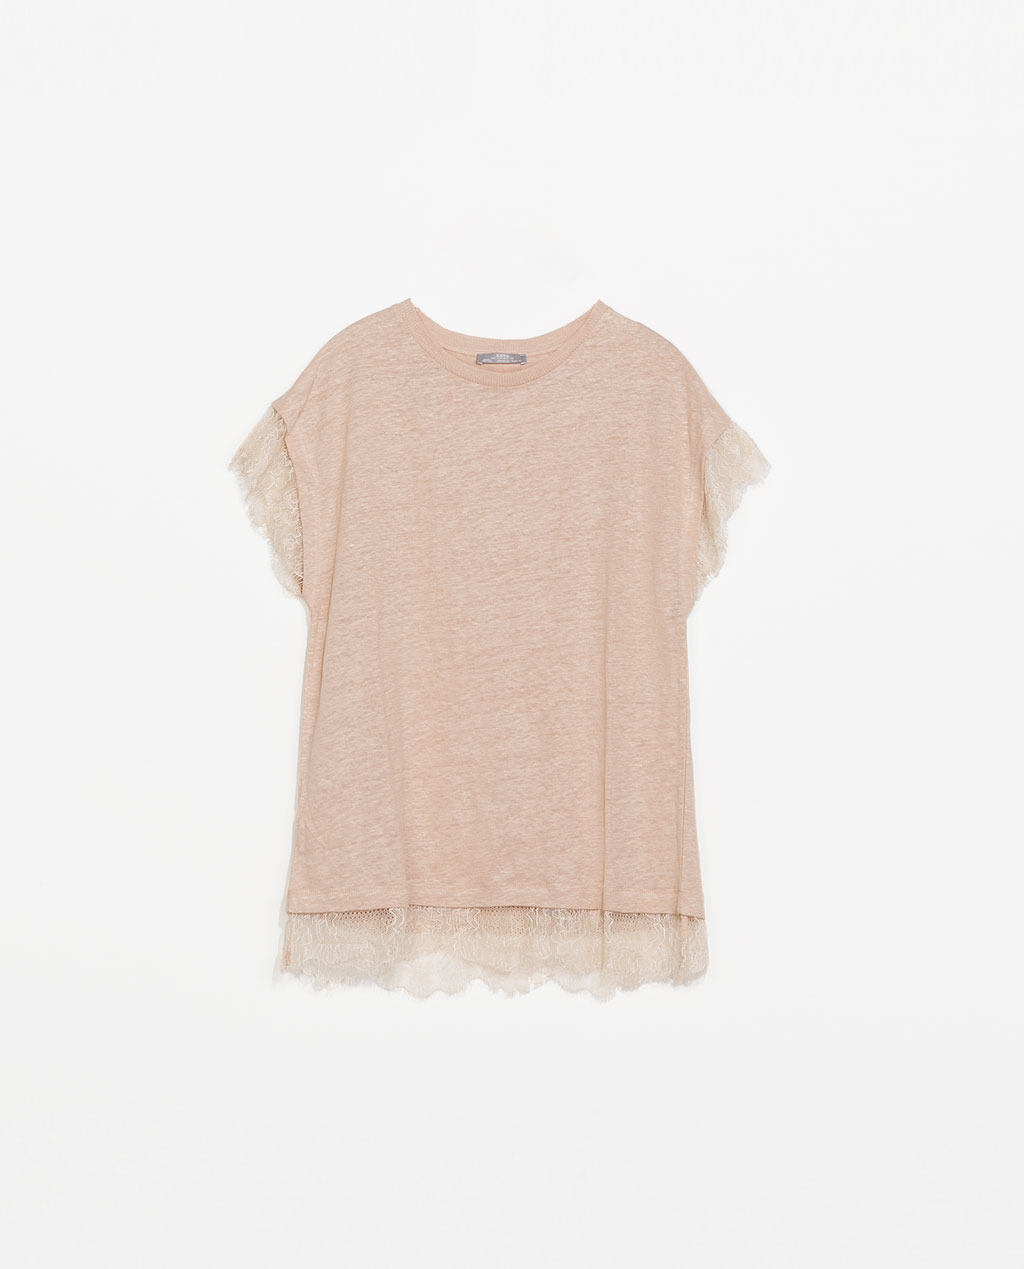 Lace Linen T Shirt - neckline: round neck; pattern: plain; style: t-shirt; predominant colour: nude; occasions: casual, creative work; length: standard; fibres: linen - 100%; fit: straight cut; sleeve length: short sleeve; sleeve style: standard; texture group: linen; pattern type: fabric; embellishment: lace; trends: lace; season: s/s 2014